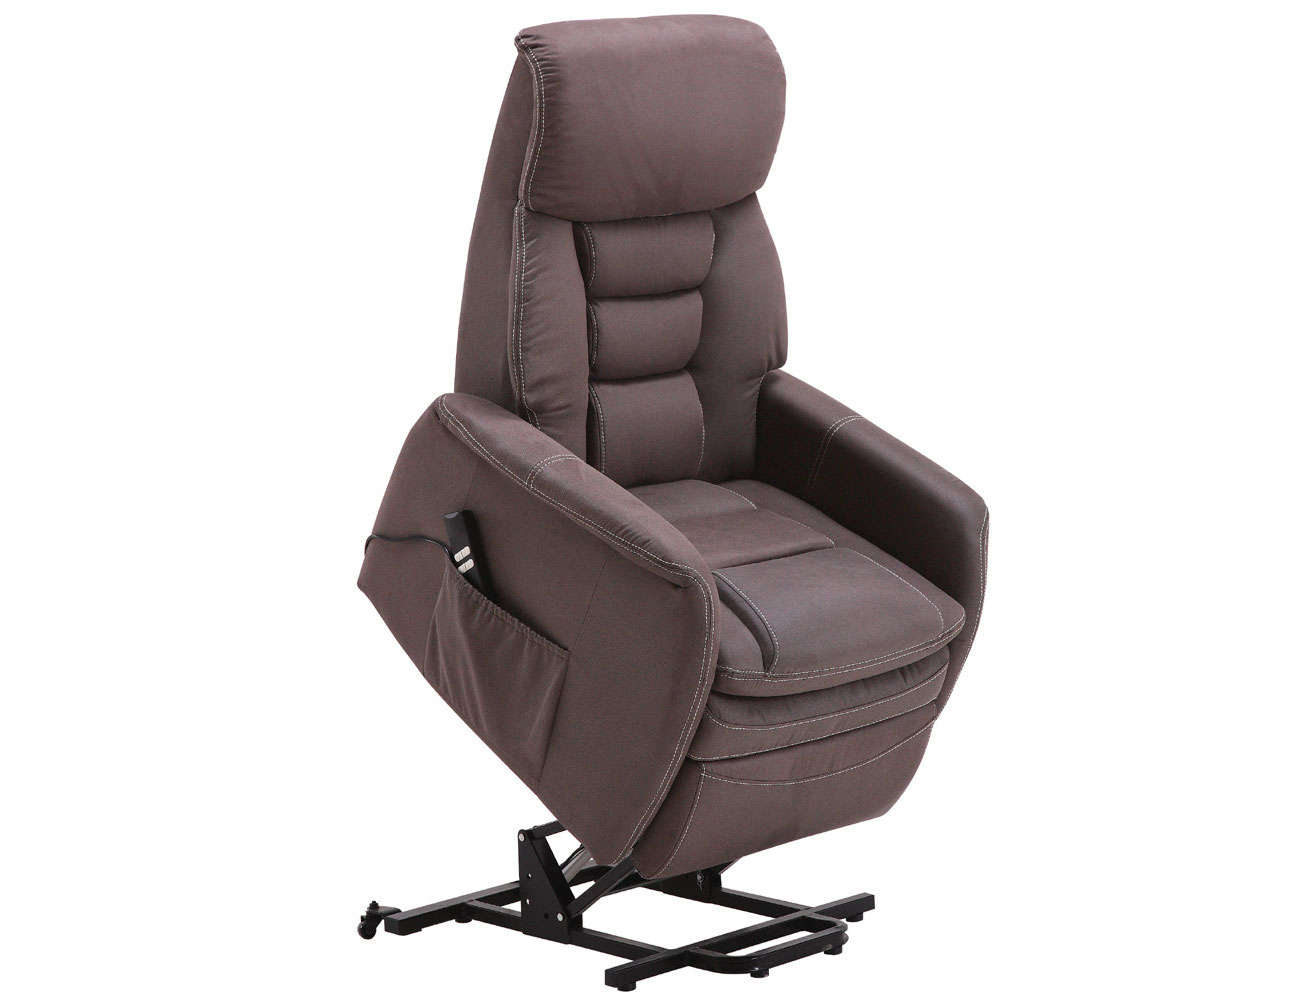 Sillon power lift levanta personas 2 motores 3